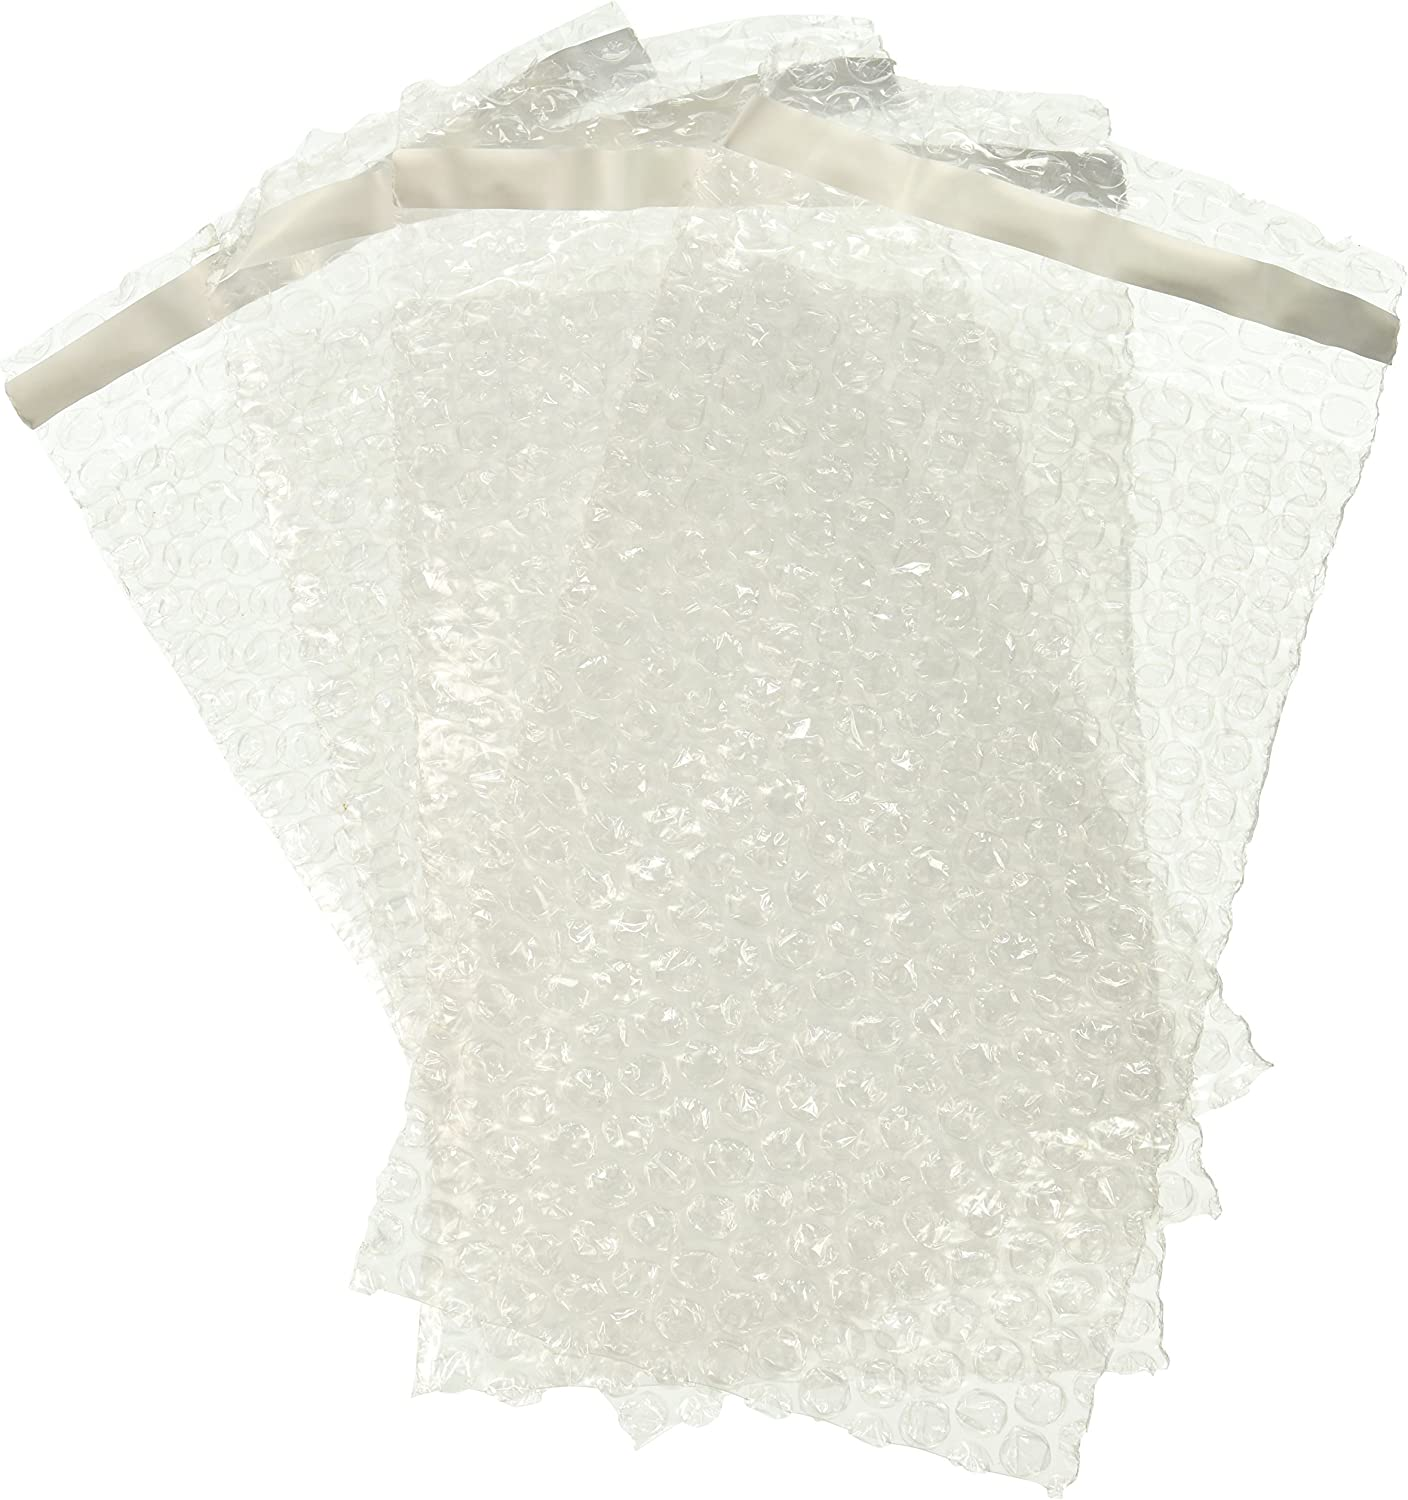 300 Small Clear Peel Seal Bubble Wrap Bags Pouches Size 7 x 9 180 x 235mm Bubblewrap Packaging Packing Storage Self Seal Cushioning Envelopes